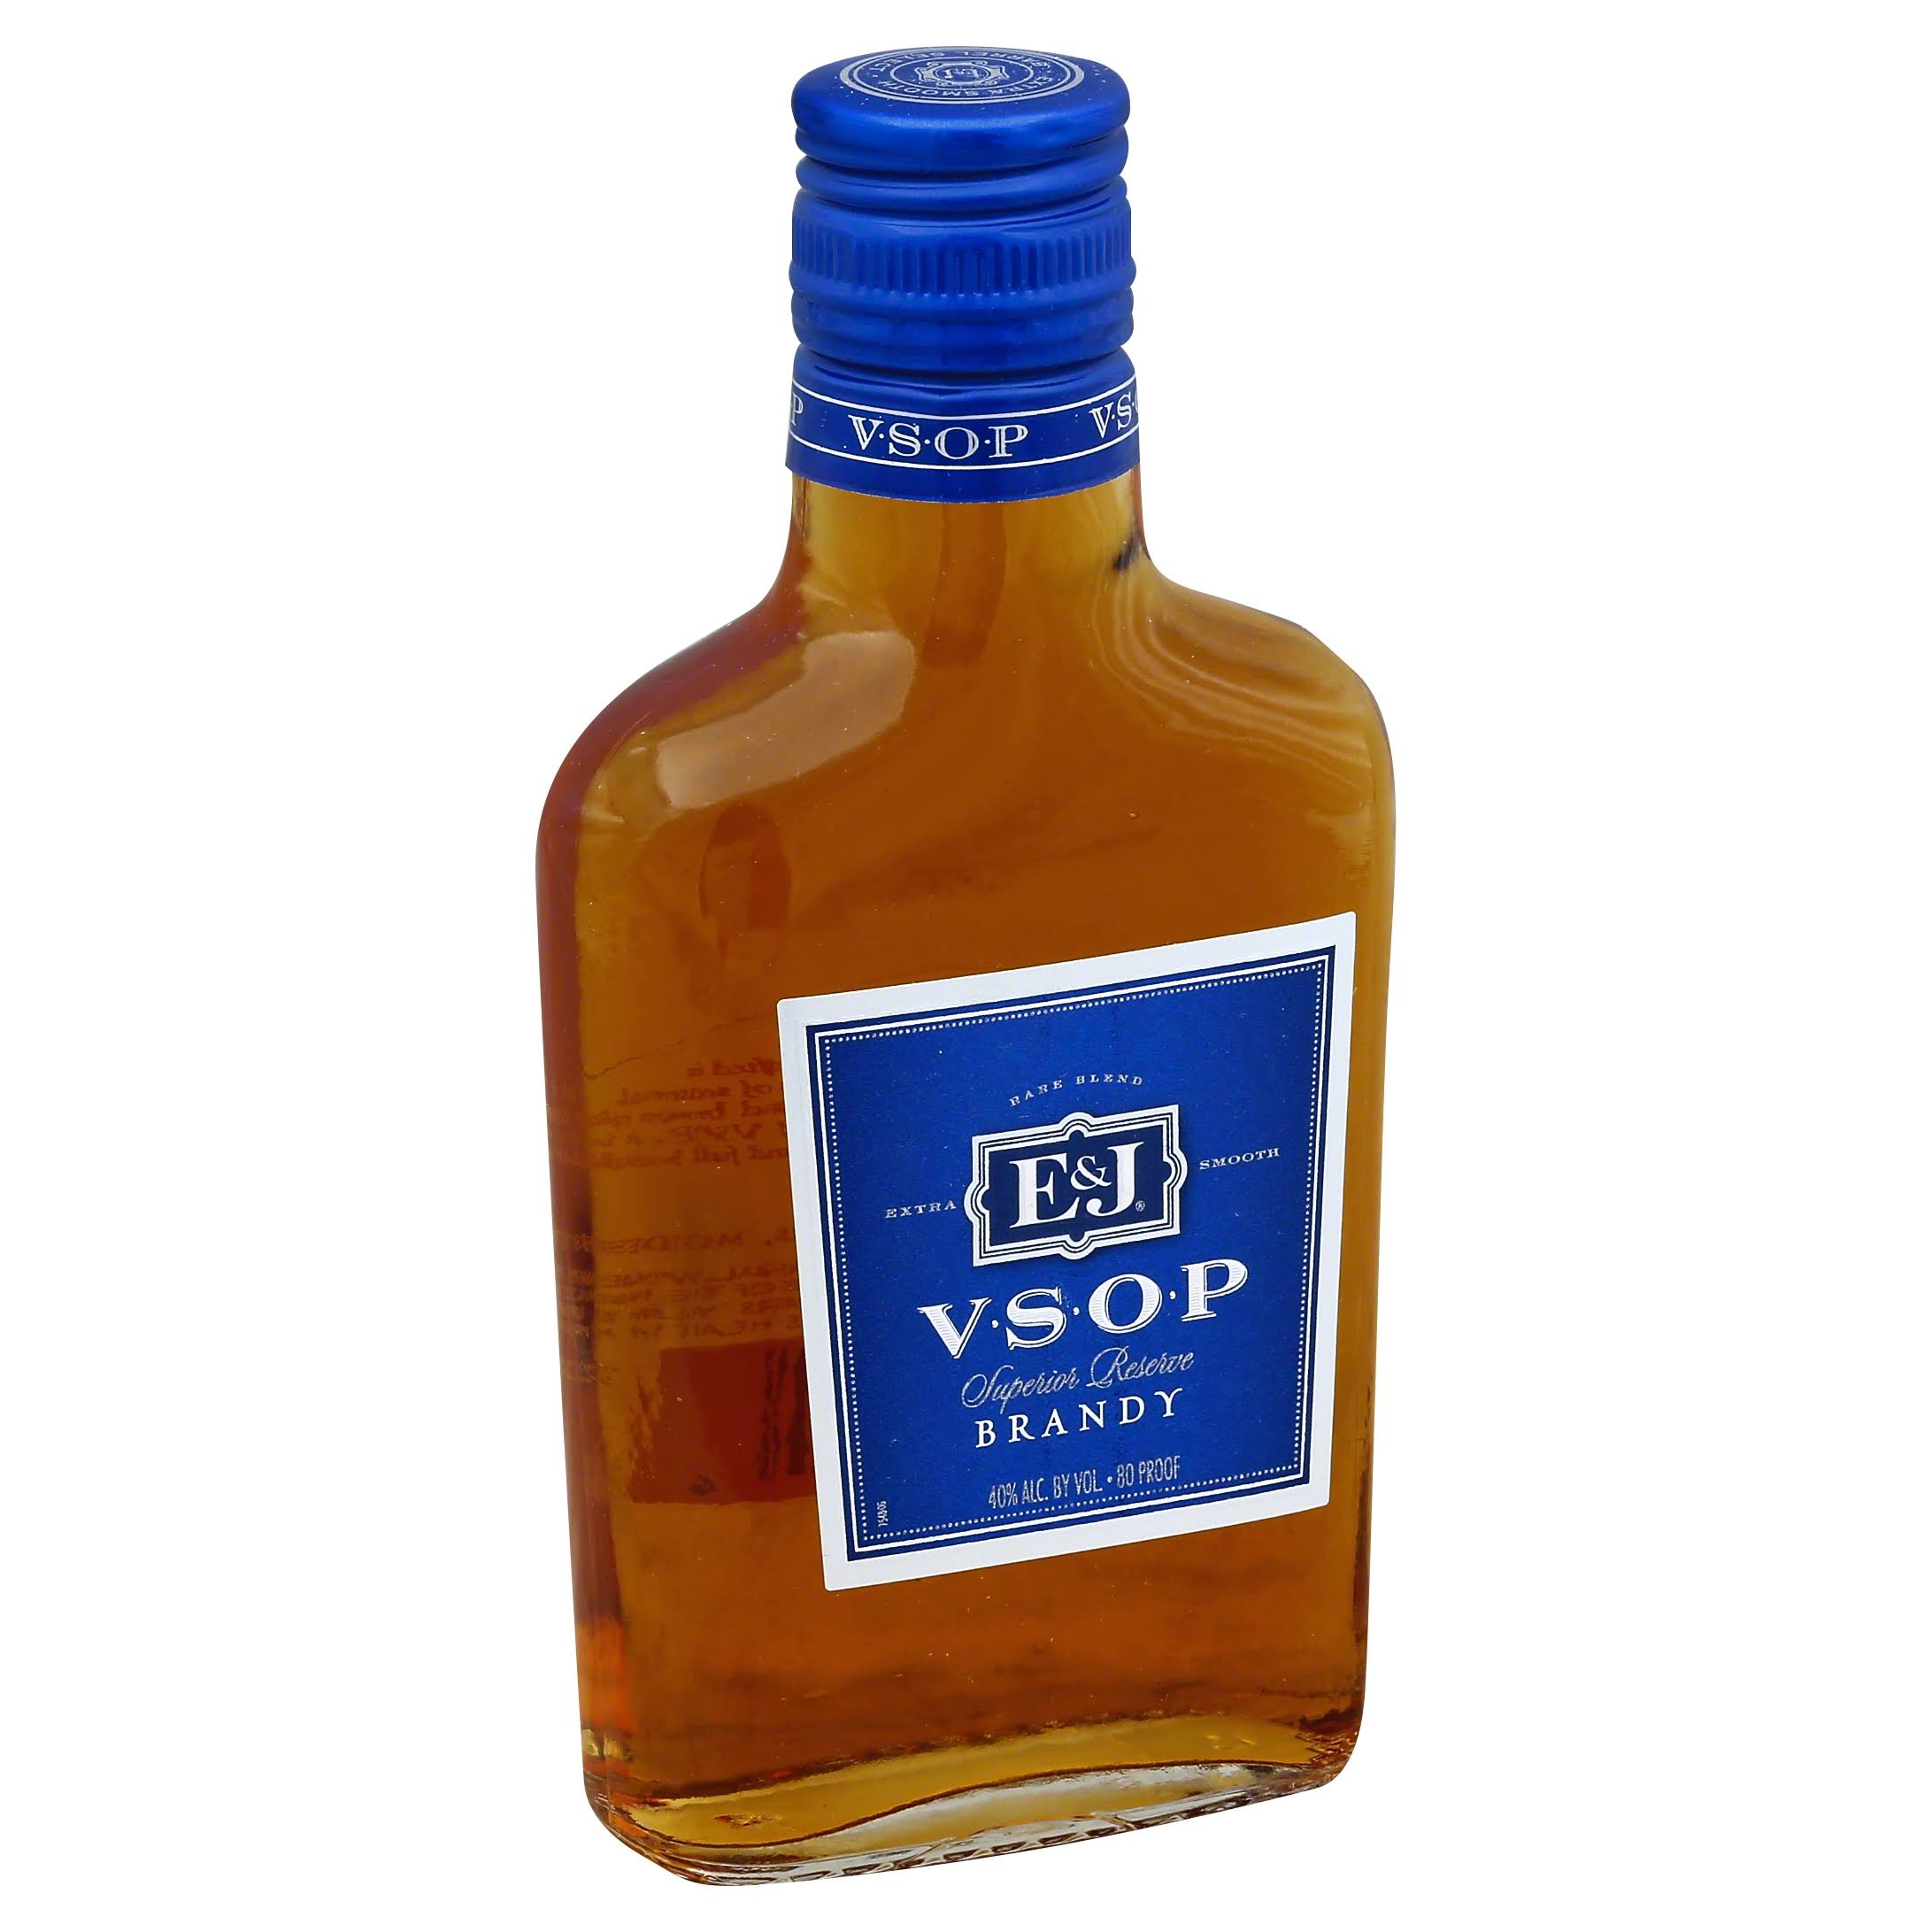 E & J VSOP Brandy, Superior Reserve - 200 ml